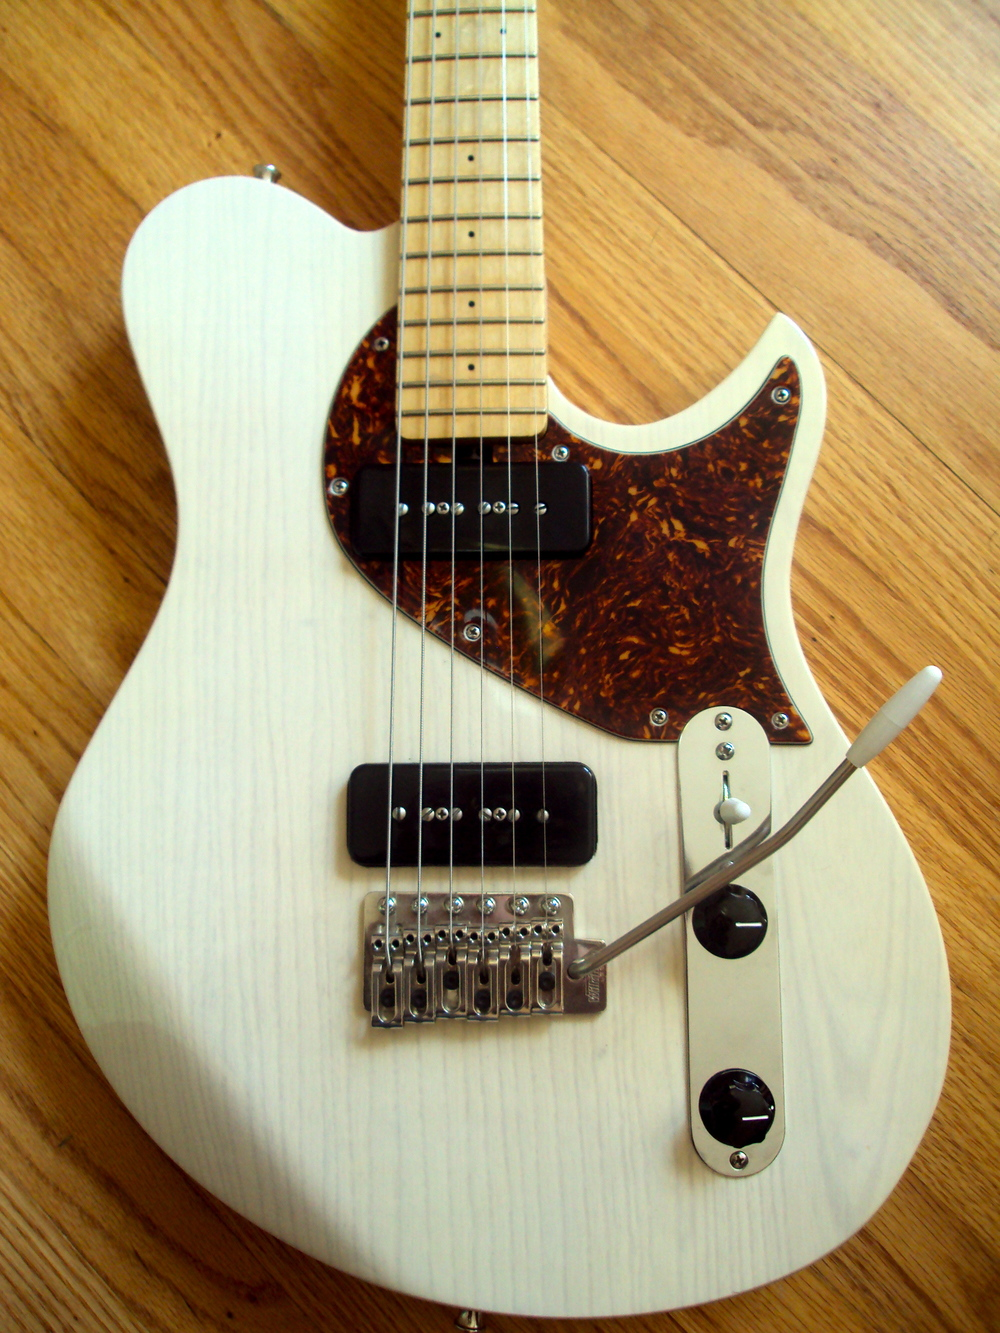 This Speedster has a one-piece swamp ash body with transparent white finish